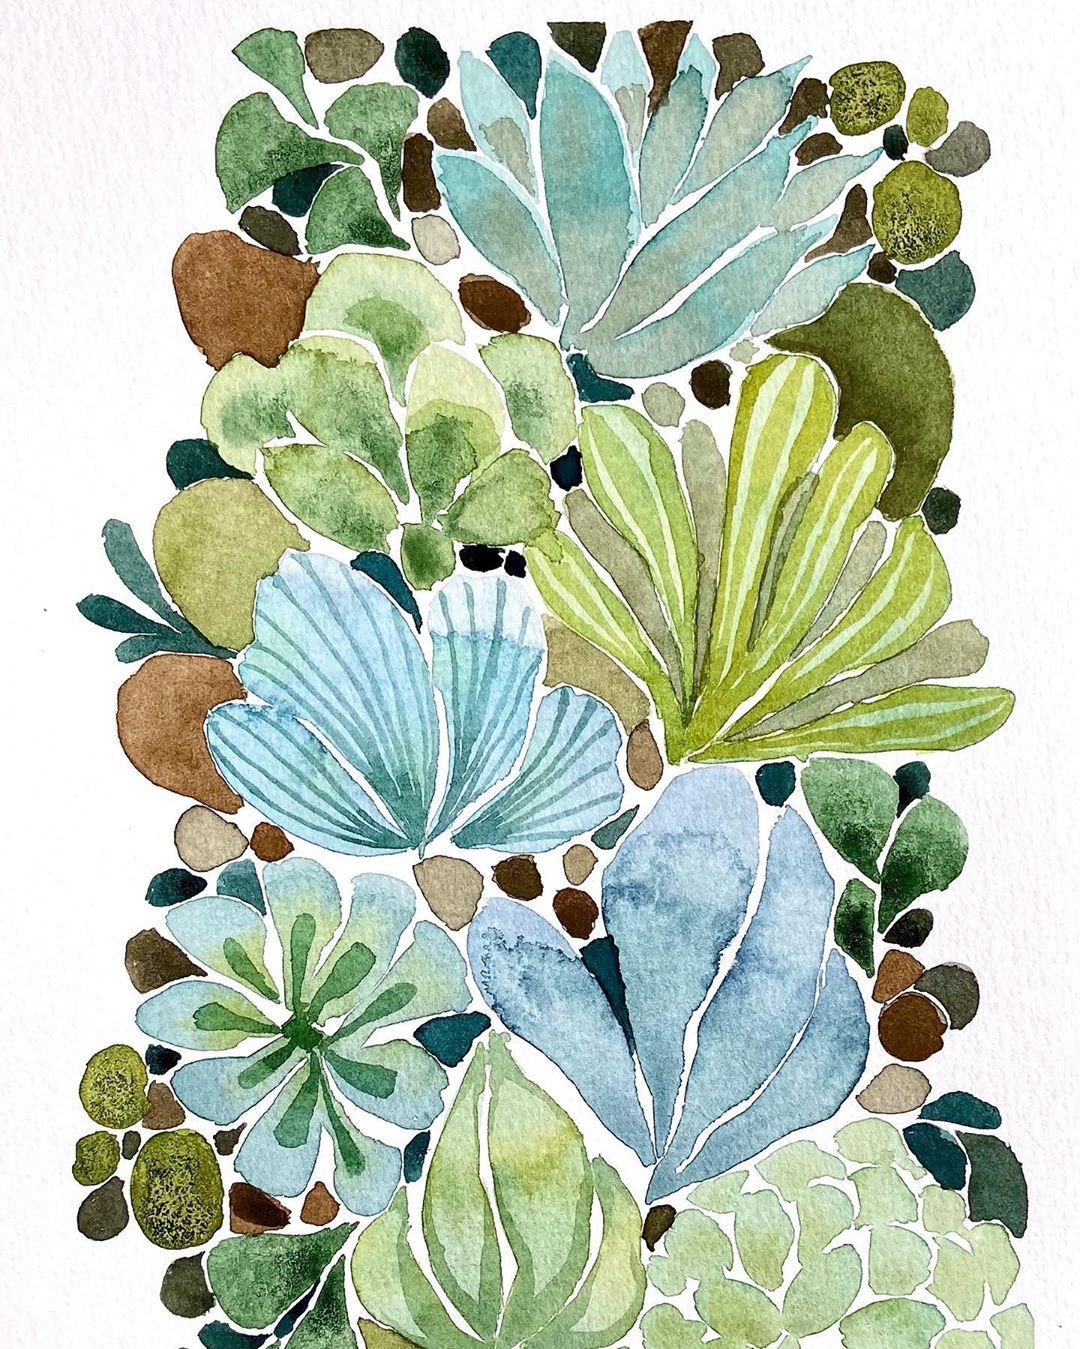 "Vanessa Cline Fuchs on Instagram: ""Succulent rock garden . . #aquarelle #aquarellepainting #aquarelleart #botanicalart #botanicalillustration #botanicalpainting…"" -  Vanessa Cline Fuchs on Instagram: ""Succulent rock garden . . #aquarelle #aquarellepainting #aquarelleart #botanicalart  Source by LITdecor  -"